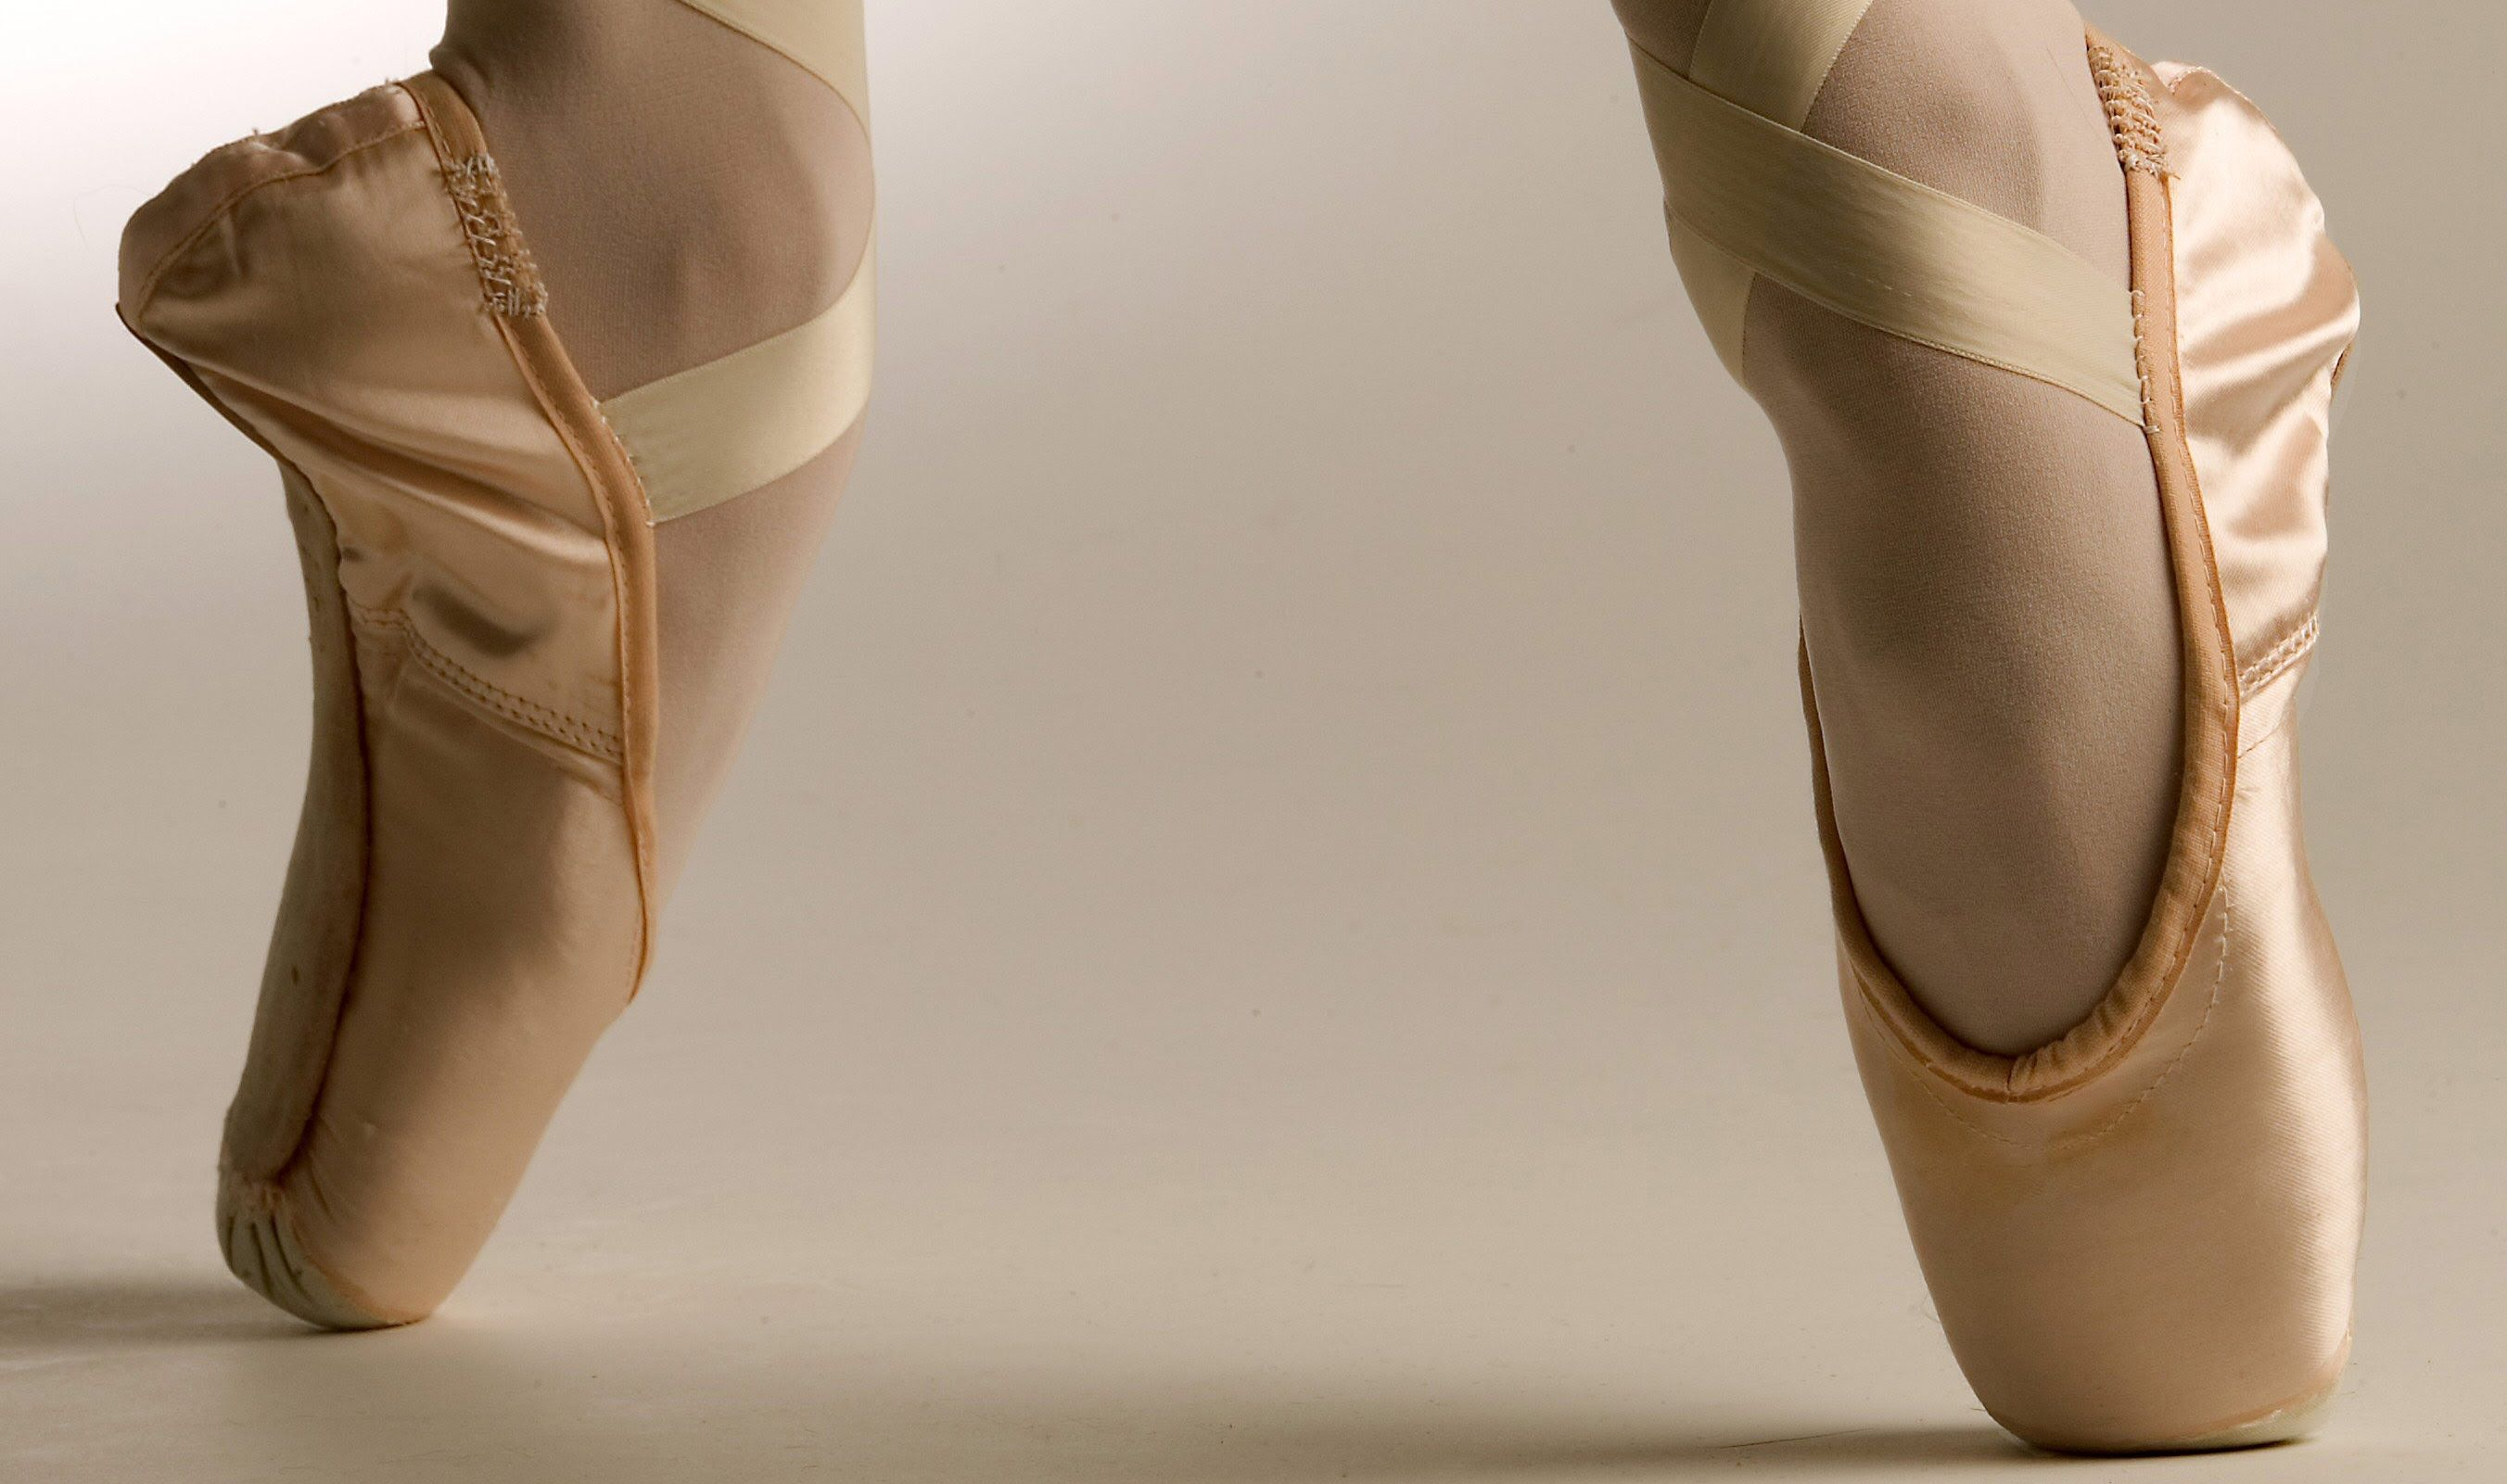 How Ballet Pointe Shoes are Made Fascinating...One more